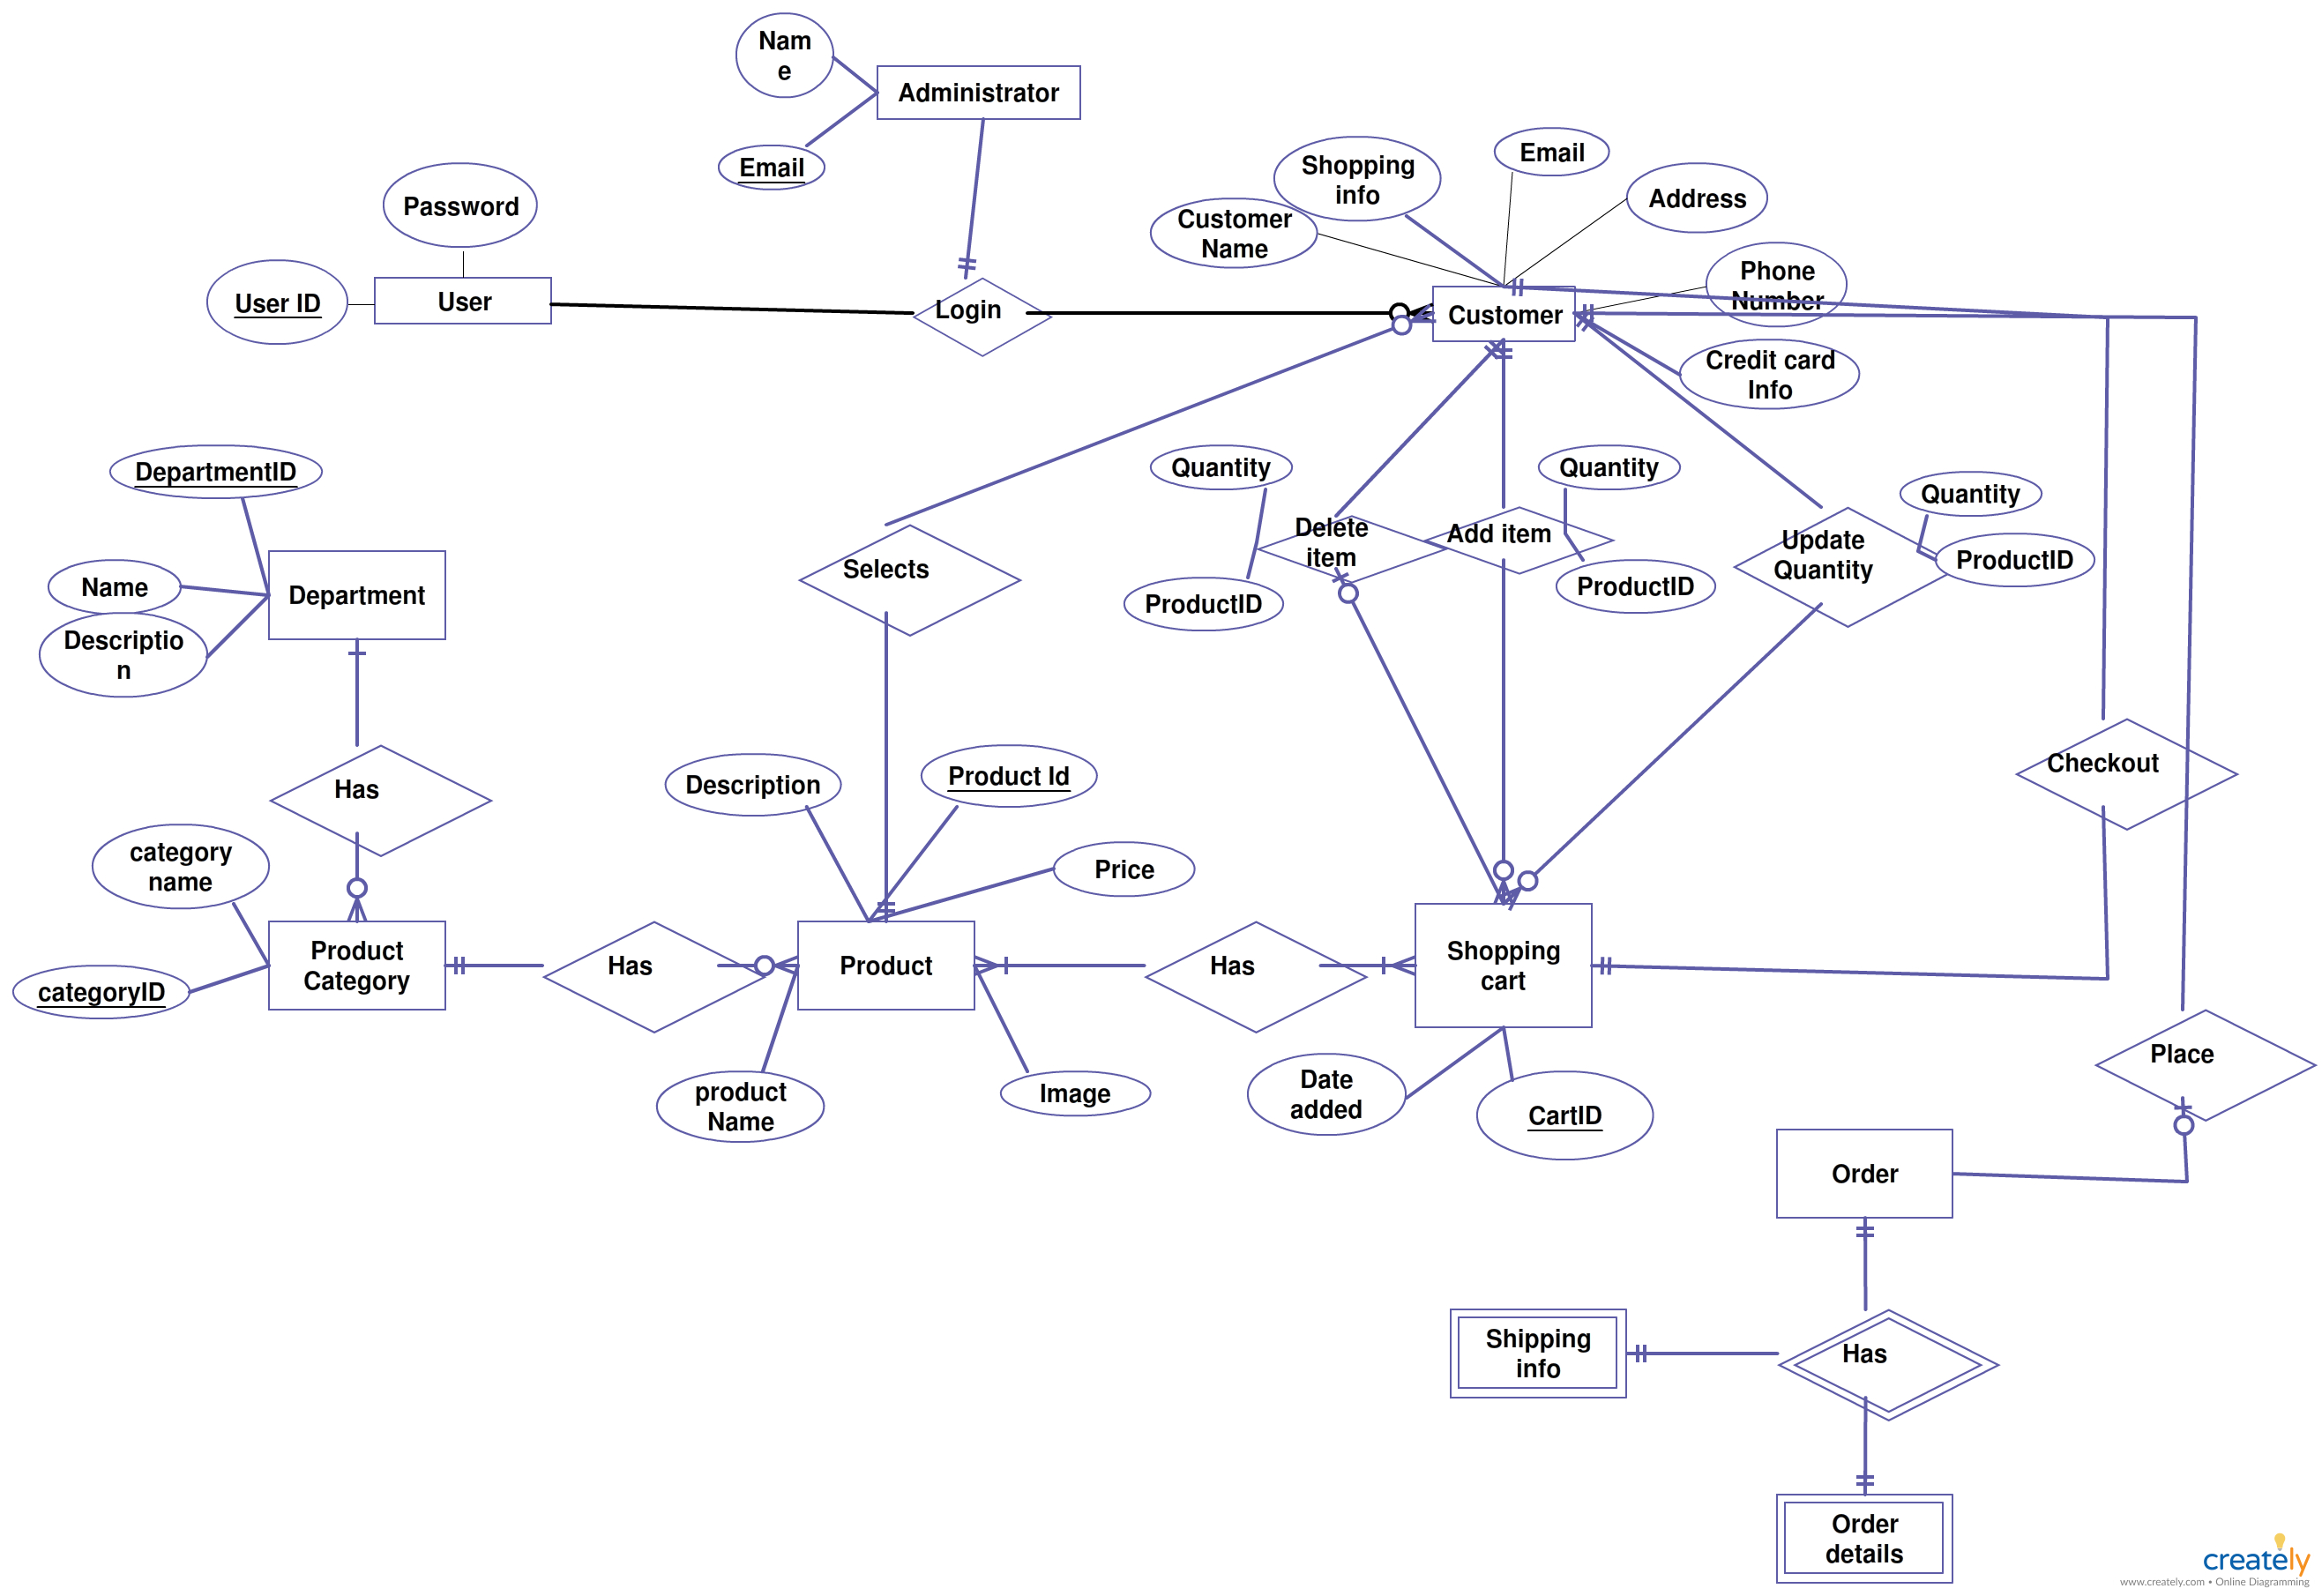 Er Diagrams Help Us To Visualize How Data Is Connected In A General in Er Diagram Examples For Shop